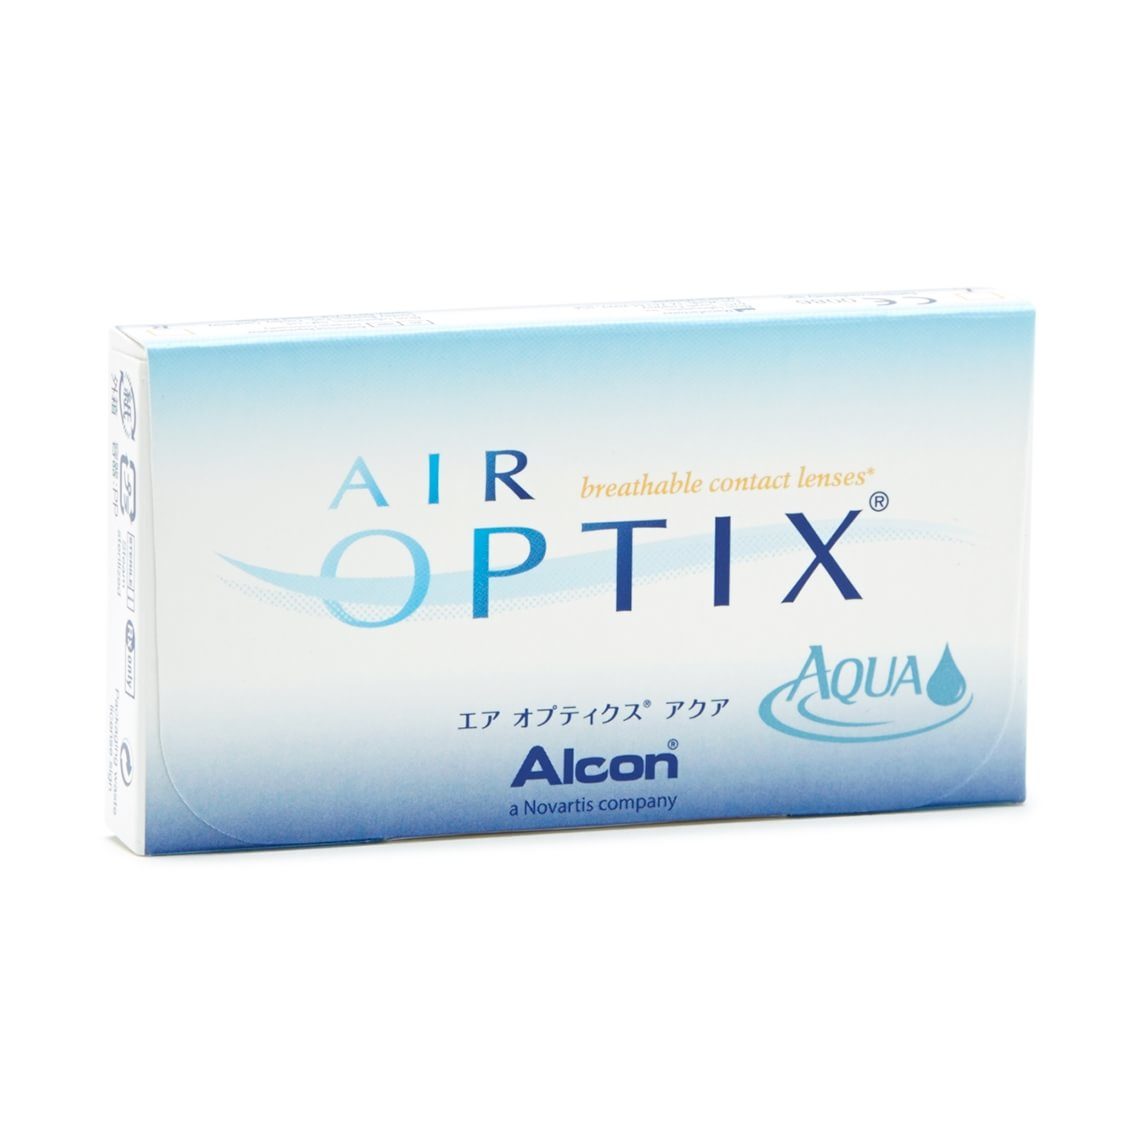 Air Optix Aqua 6 stk/pakke